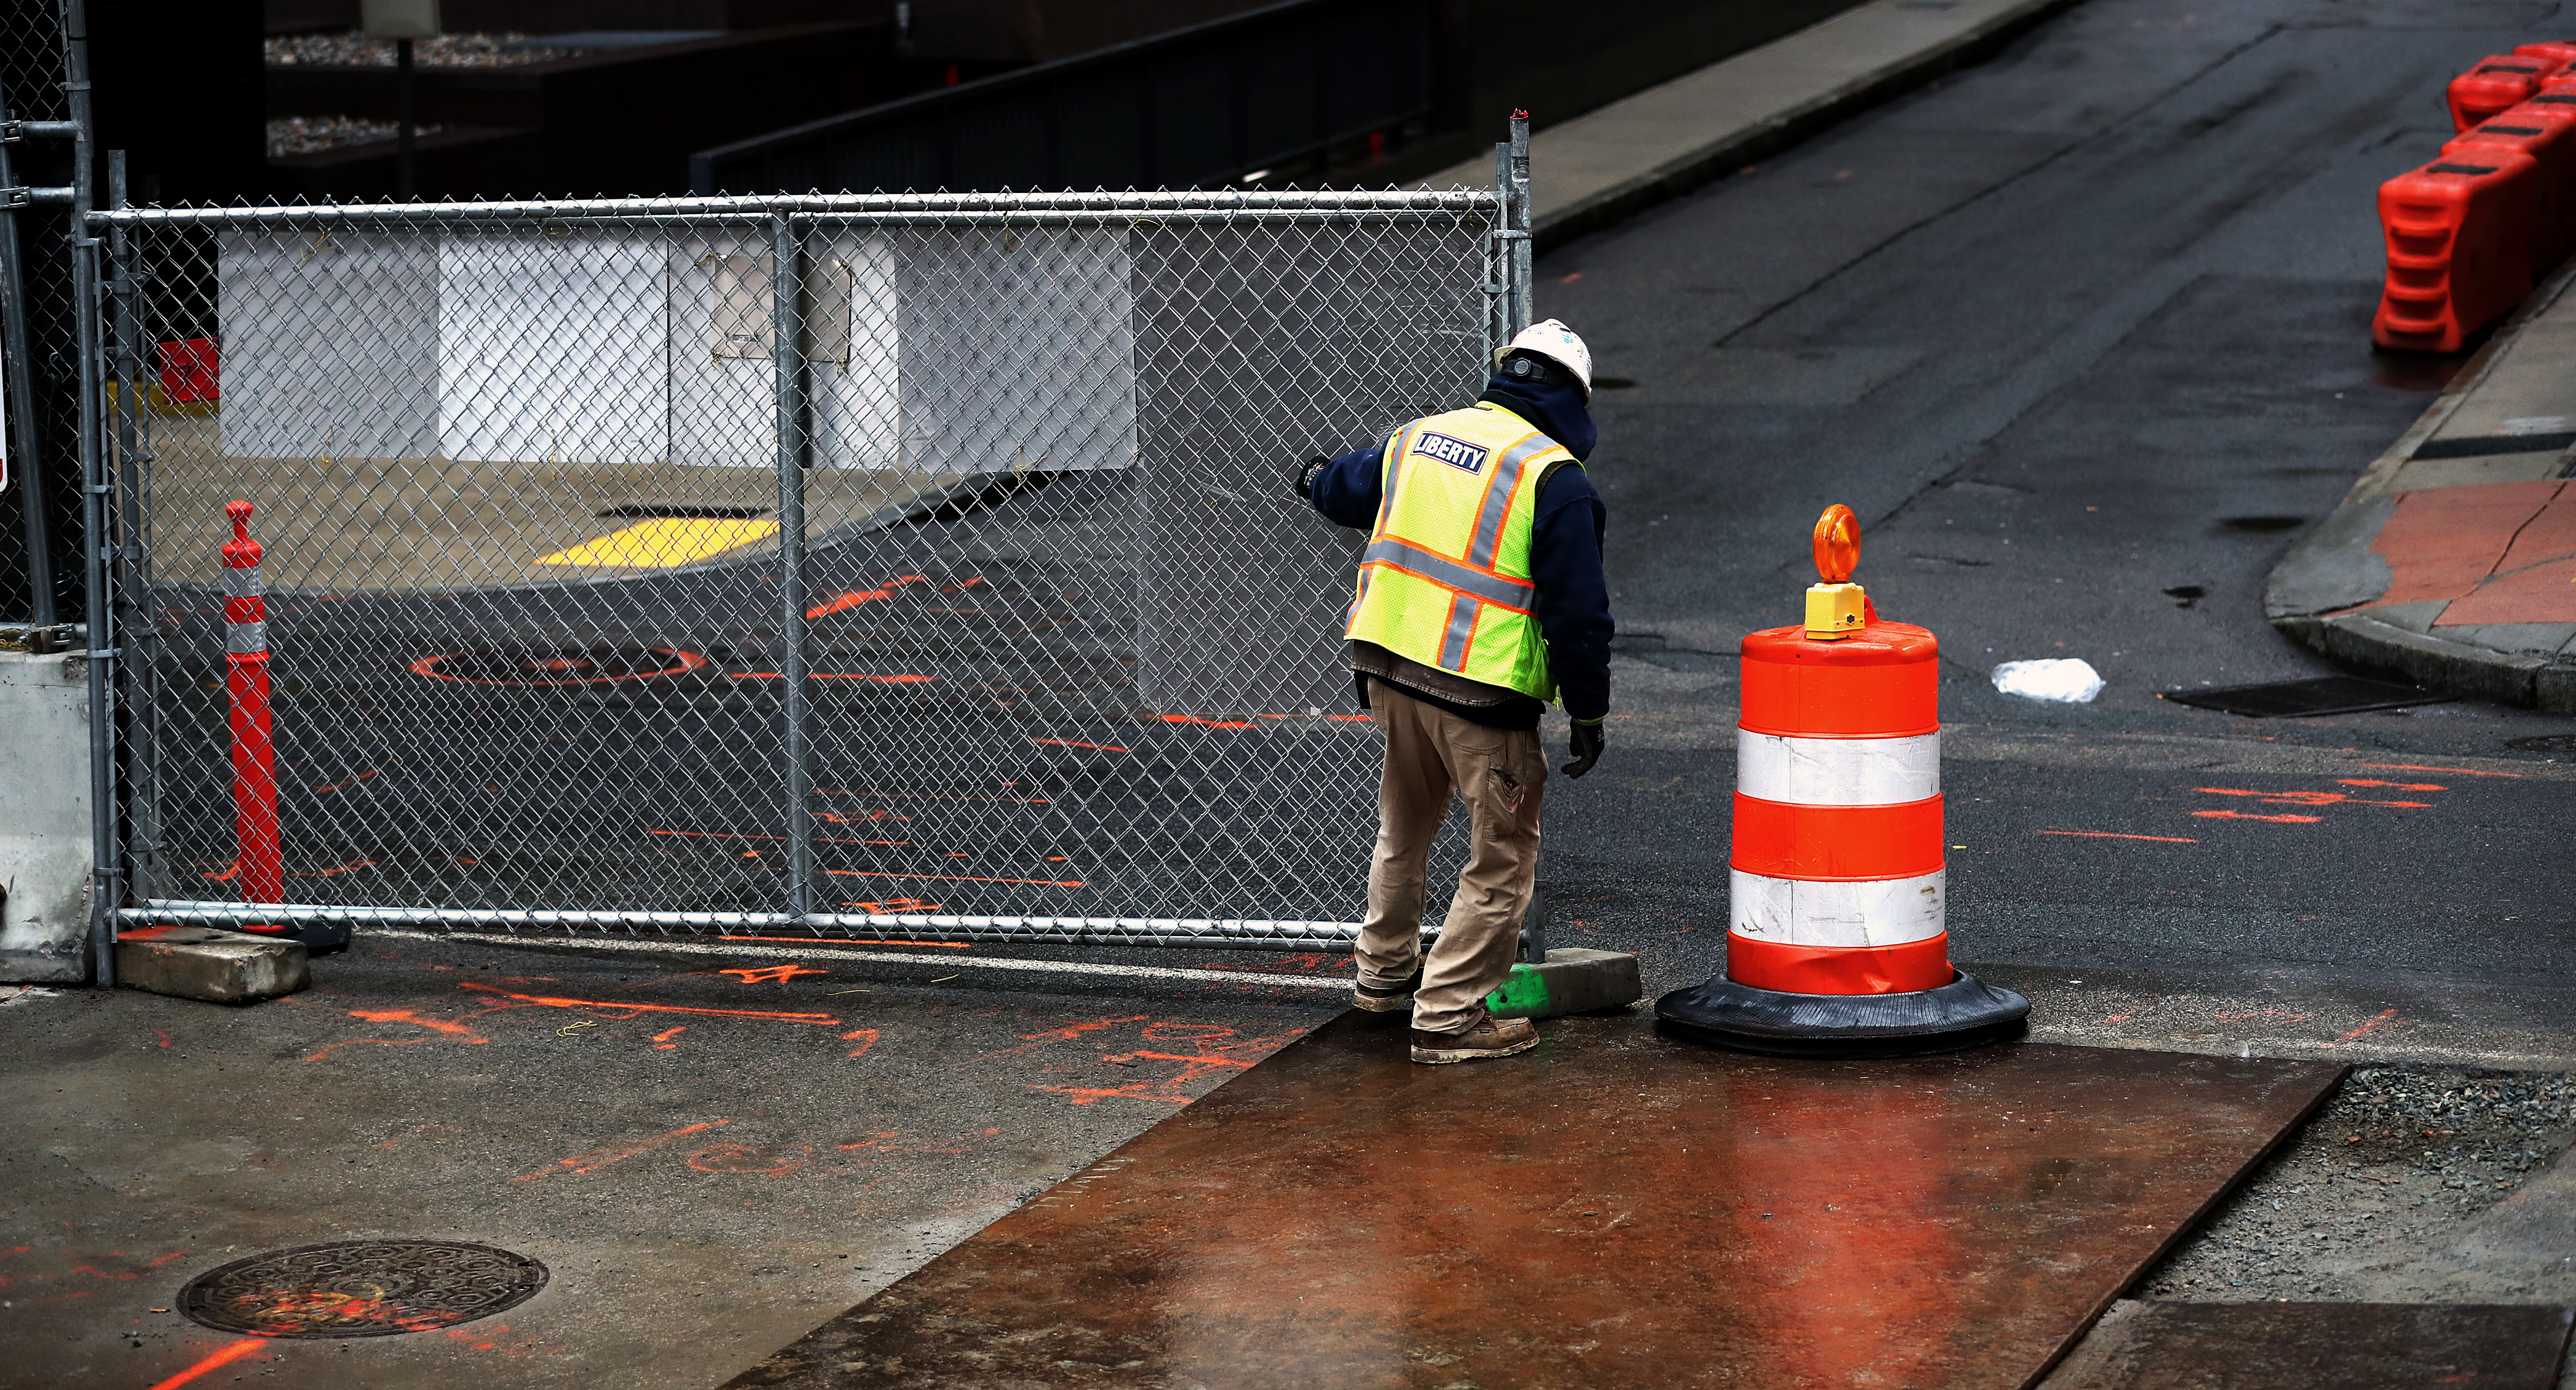 A lone construction worker closing a chain-link fence at a construction site, and there's an orange barrel next to him.